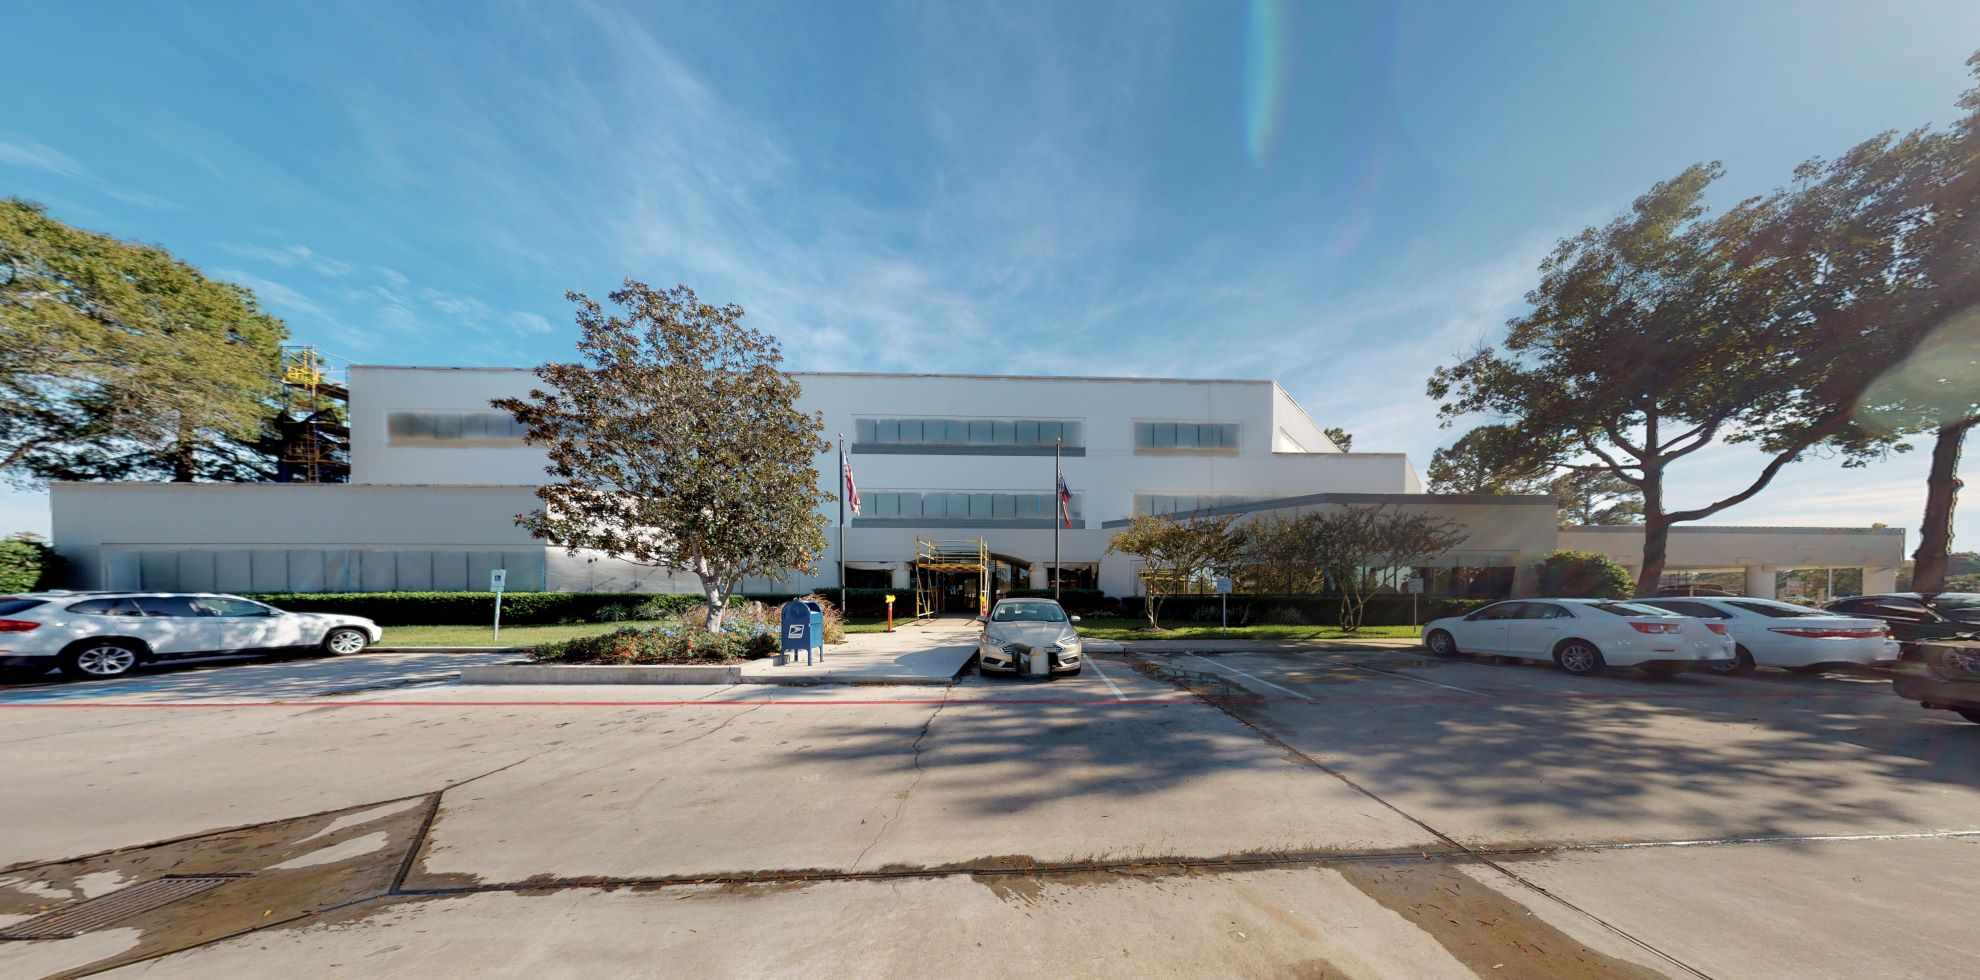 Bank of America financial center with drive-thru ATM   7702 FM 1960 Rd E STE 102, Humble, TX 77346